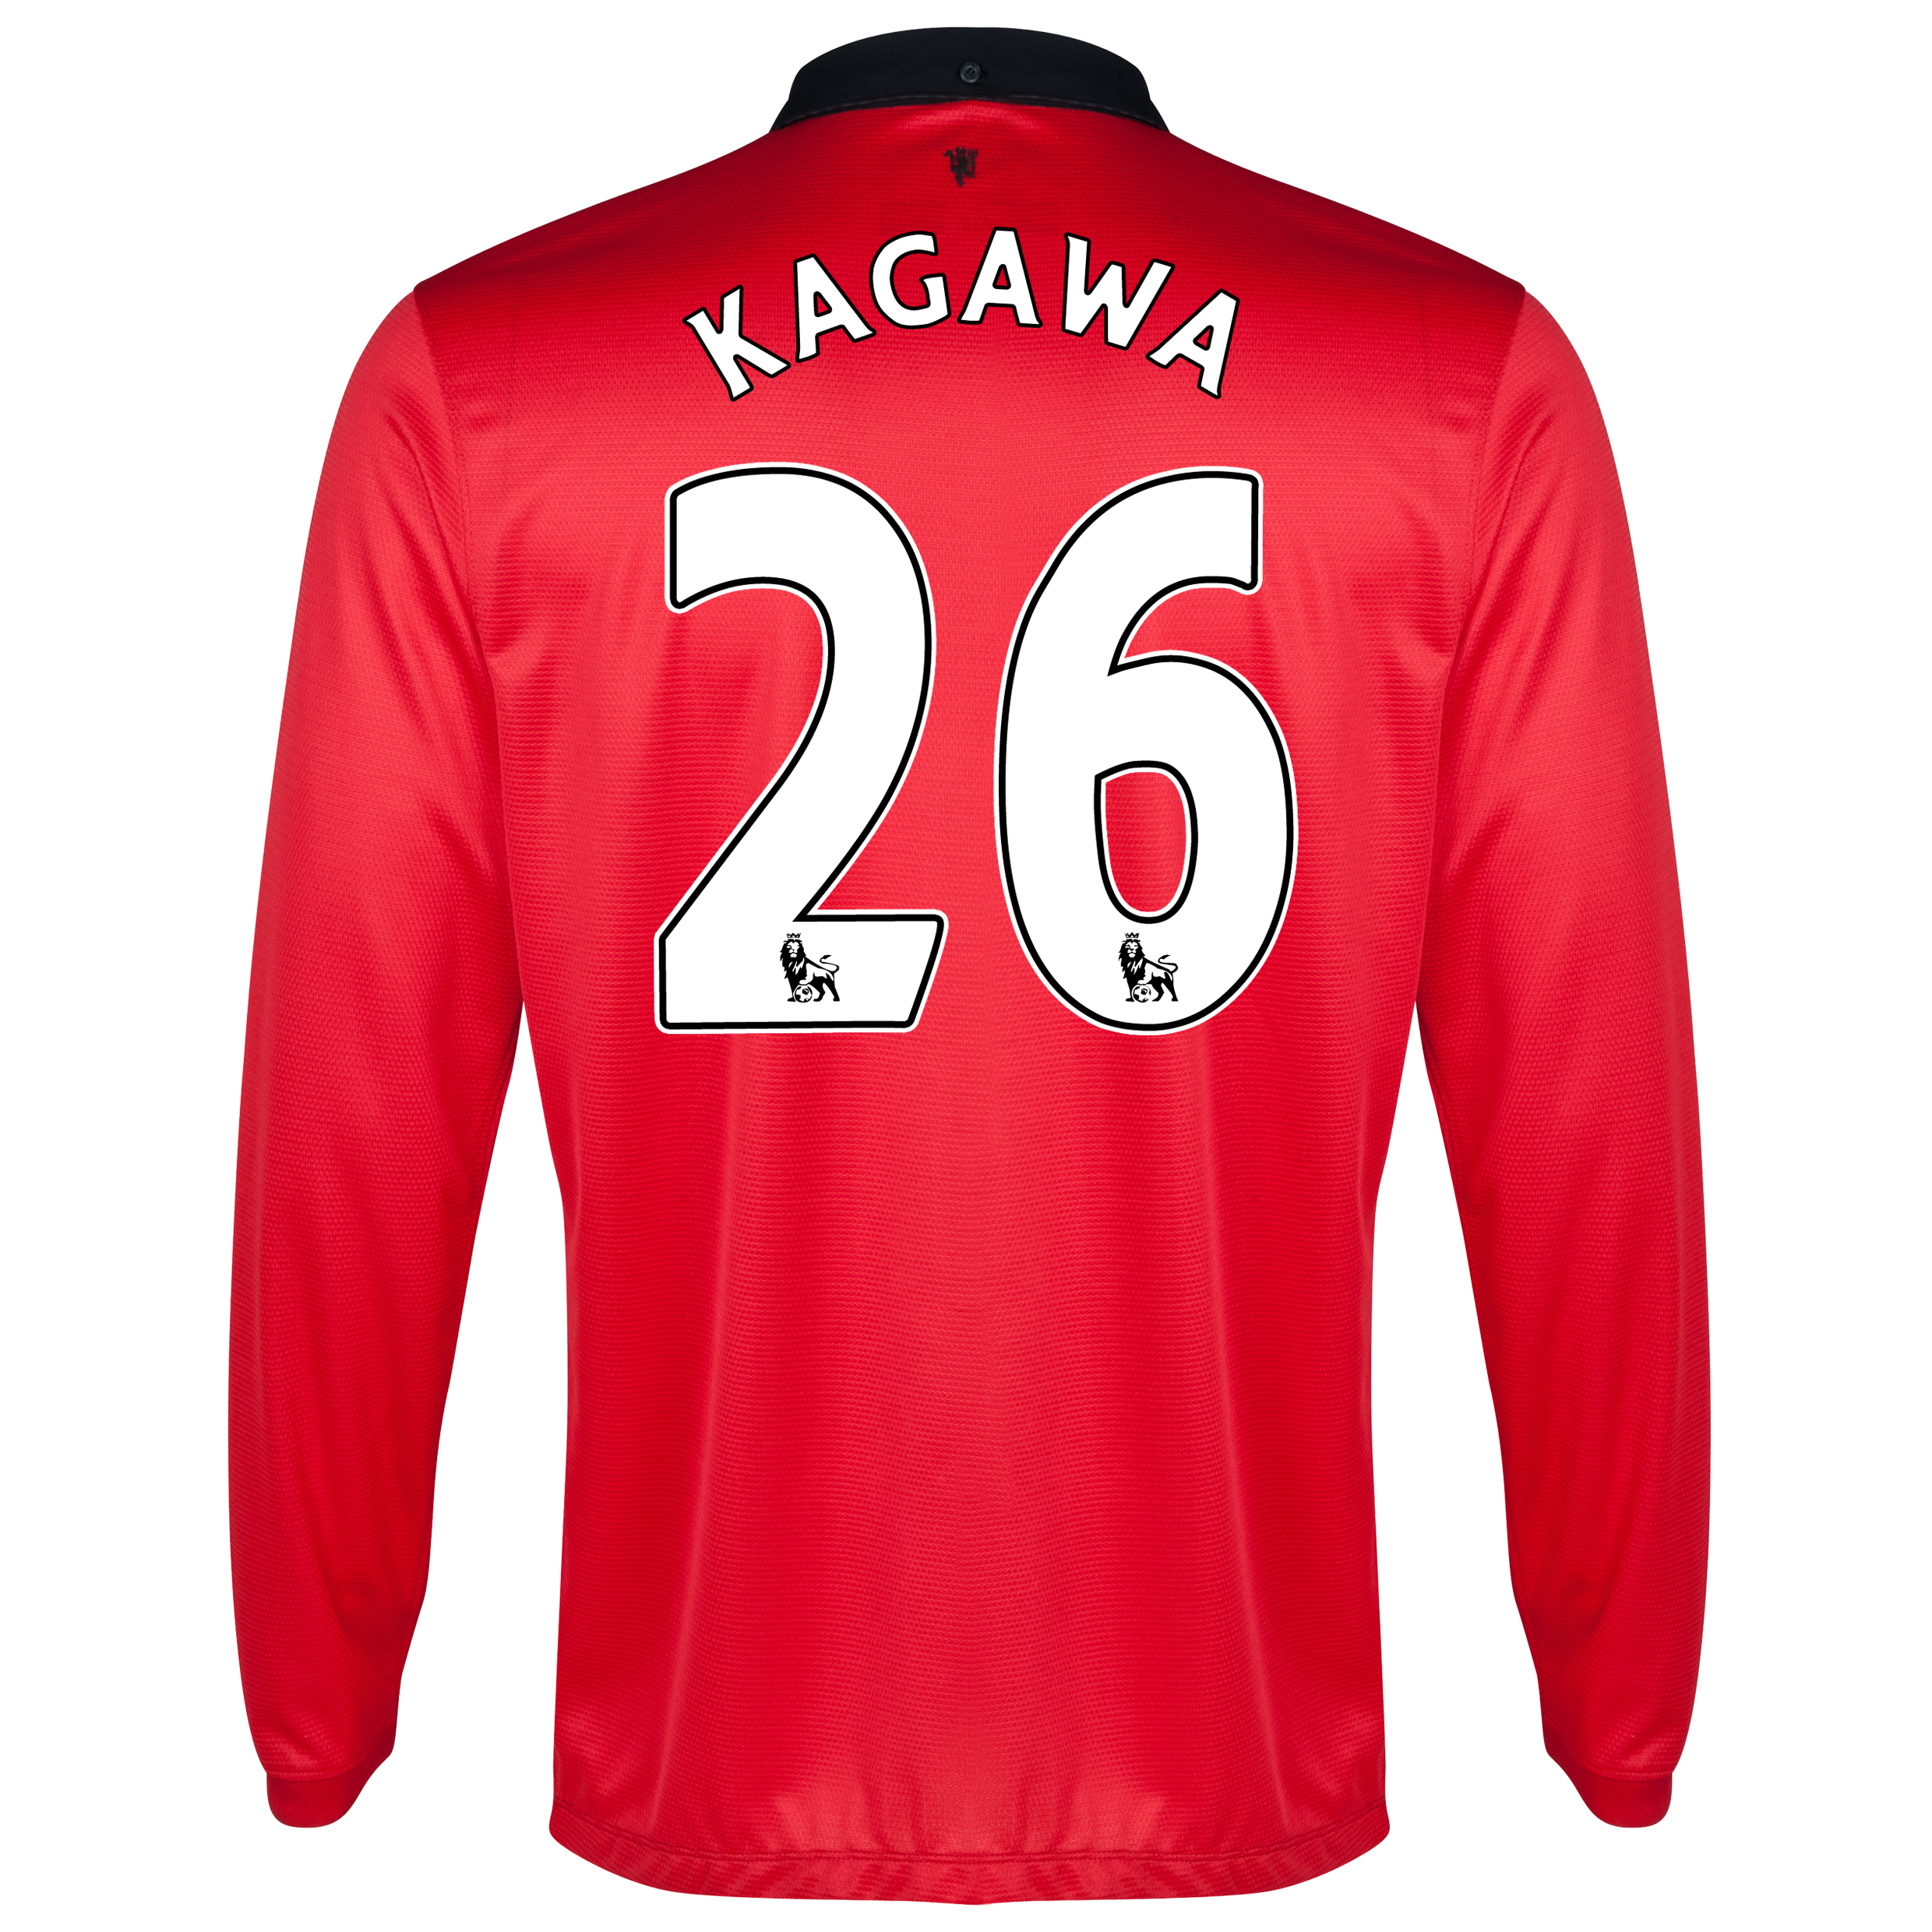 Manchester United Home Shirt 2013/14 - Long Sleeved - Kids with Kagawa 26 printing